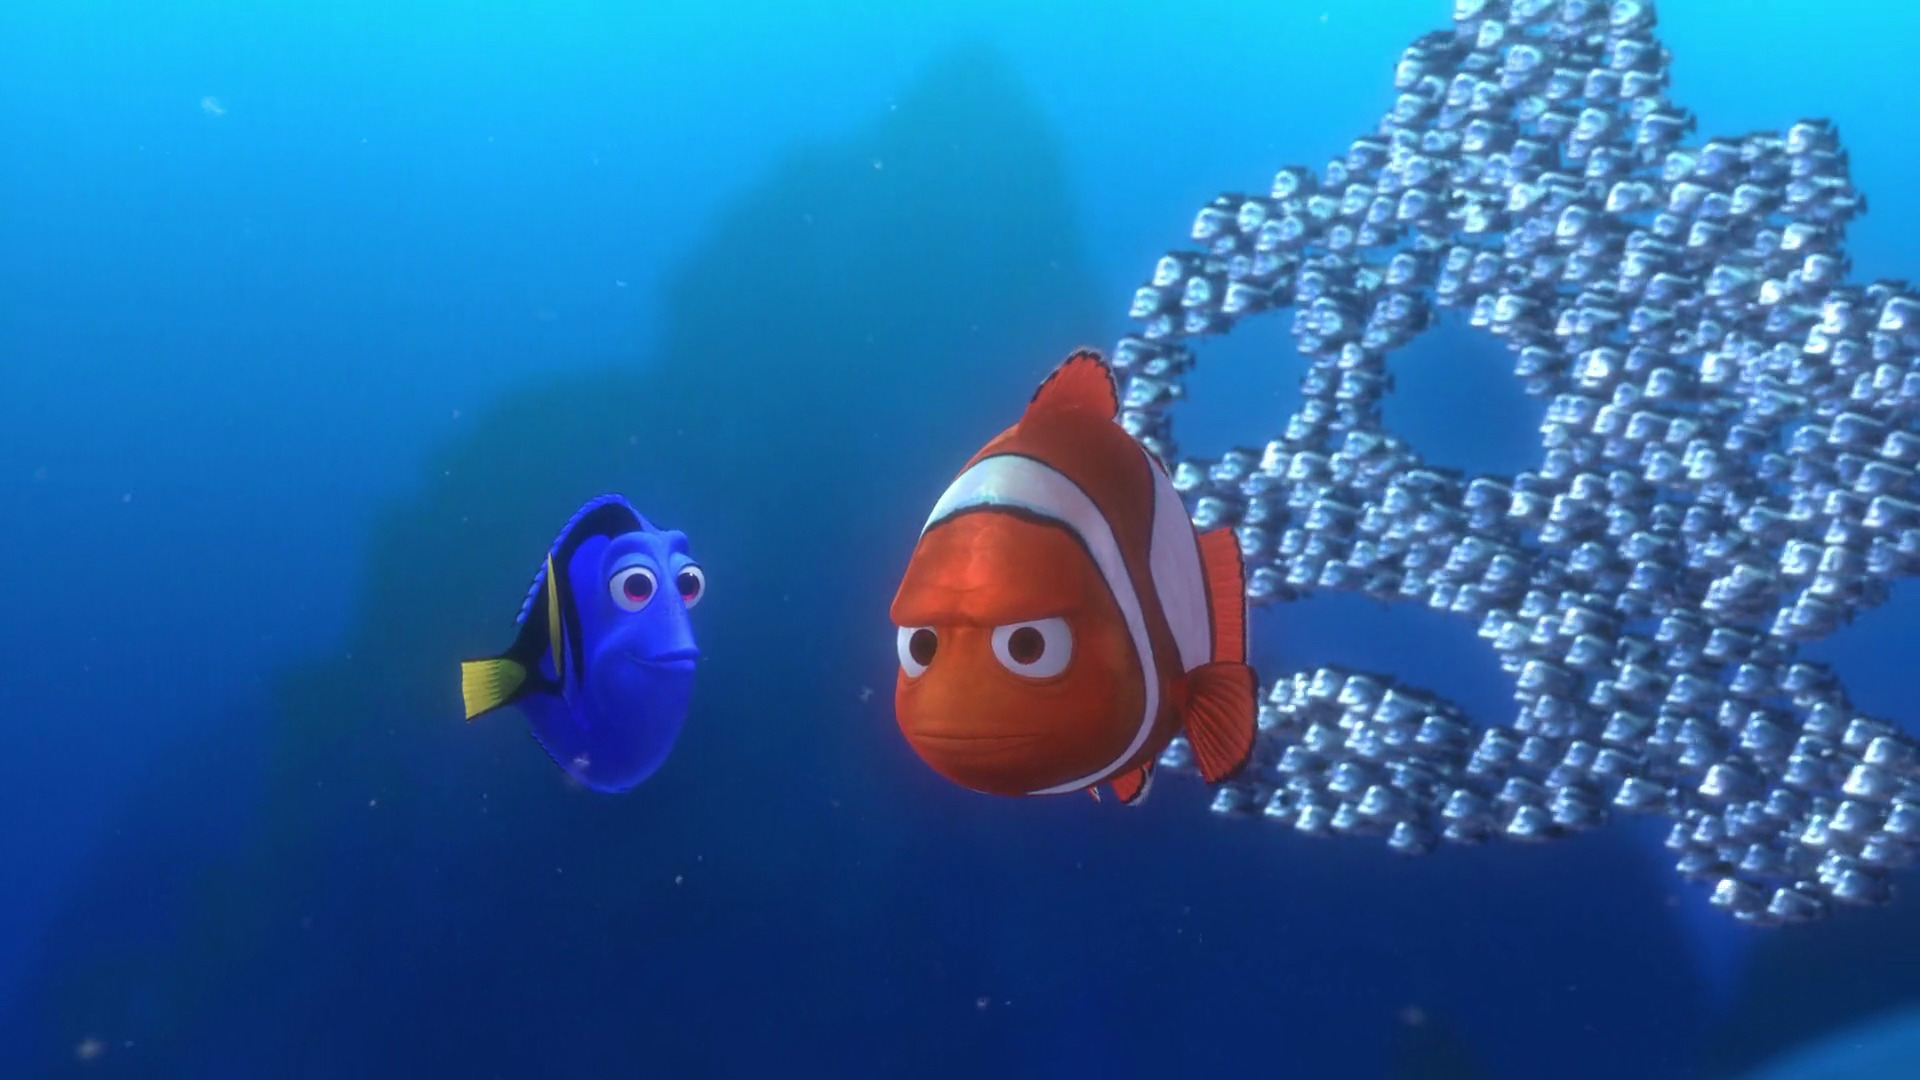 odyssey vs finding nemo Pixar's 'finding dory' keeps on swimming past  the sequel to pixar's 2003 fish film finding nemo has made an estimated $446  from super mario odyssey to.